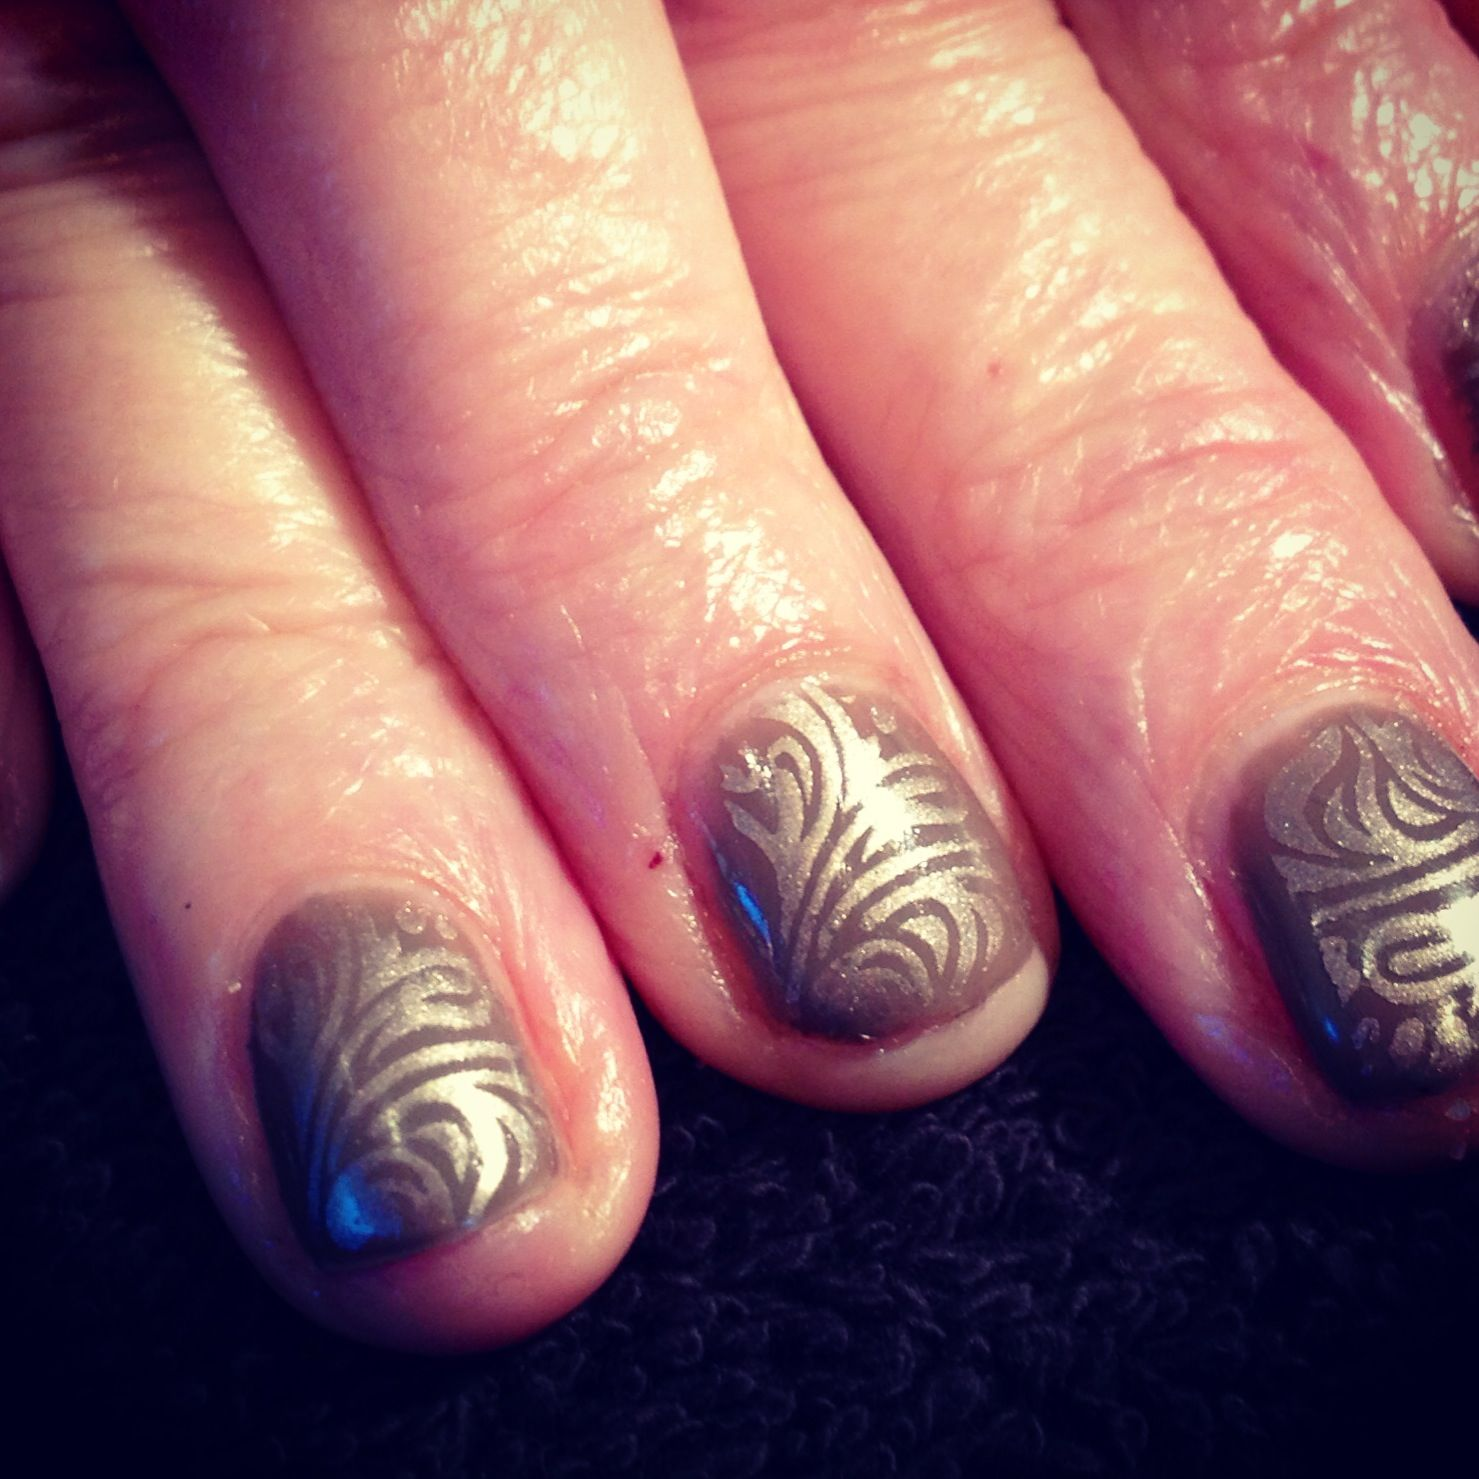 Shellac nails with konad overlay. Photo by Louise Leake